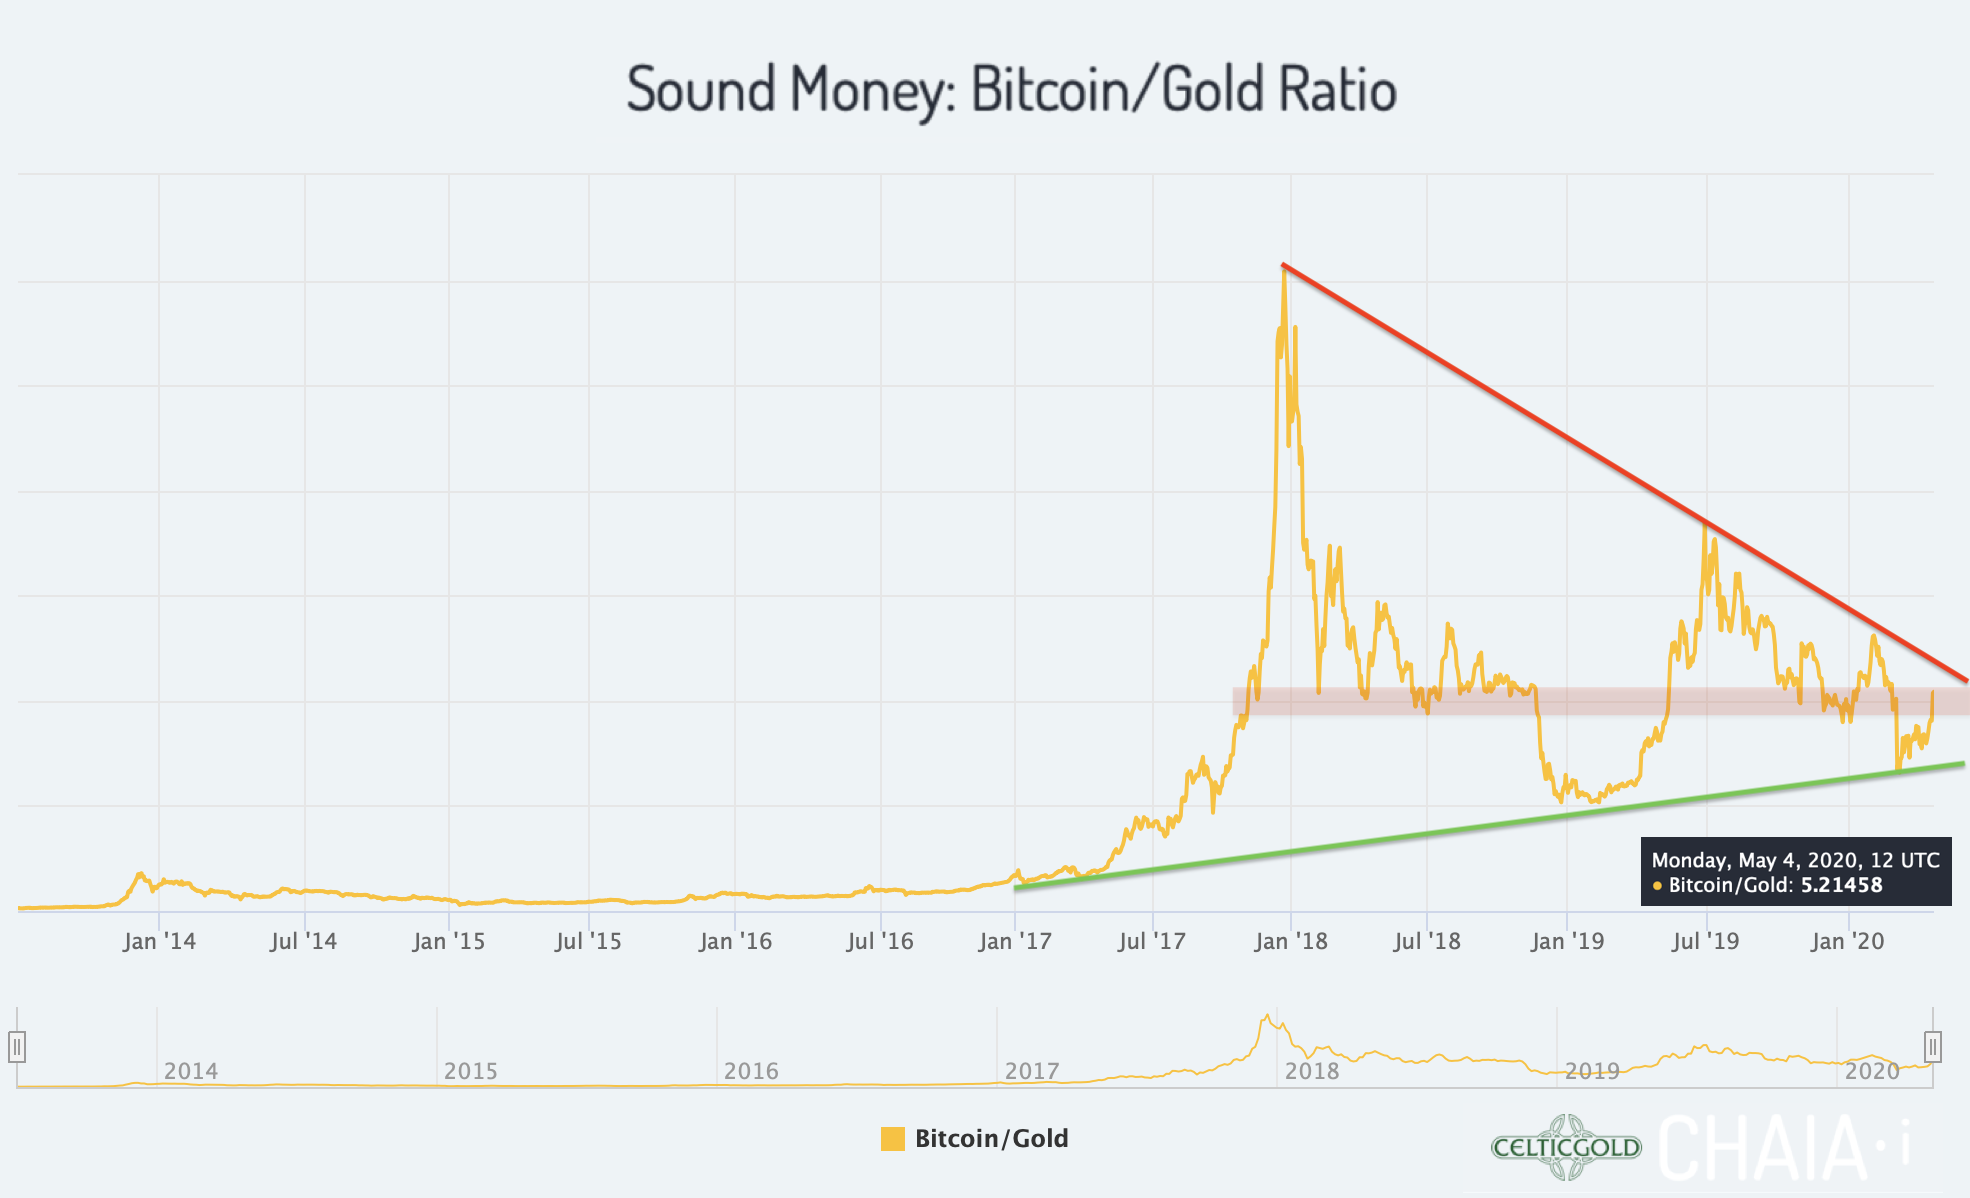 Sound Money Bitcoin/Gold-Ratio as of May 4th, 2020. Source: Chaia, Bitcoin - Breakout In Progress